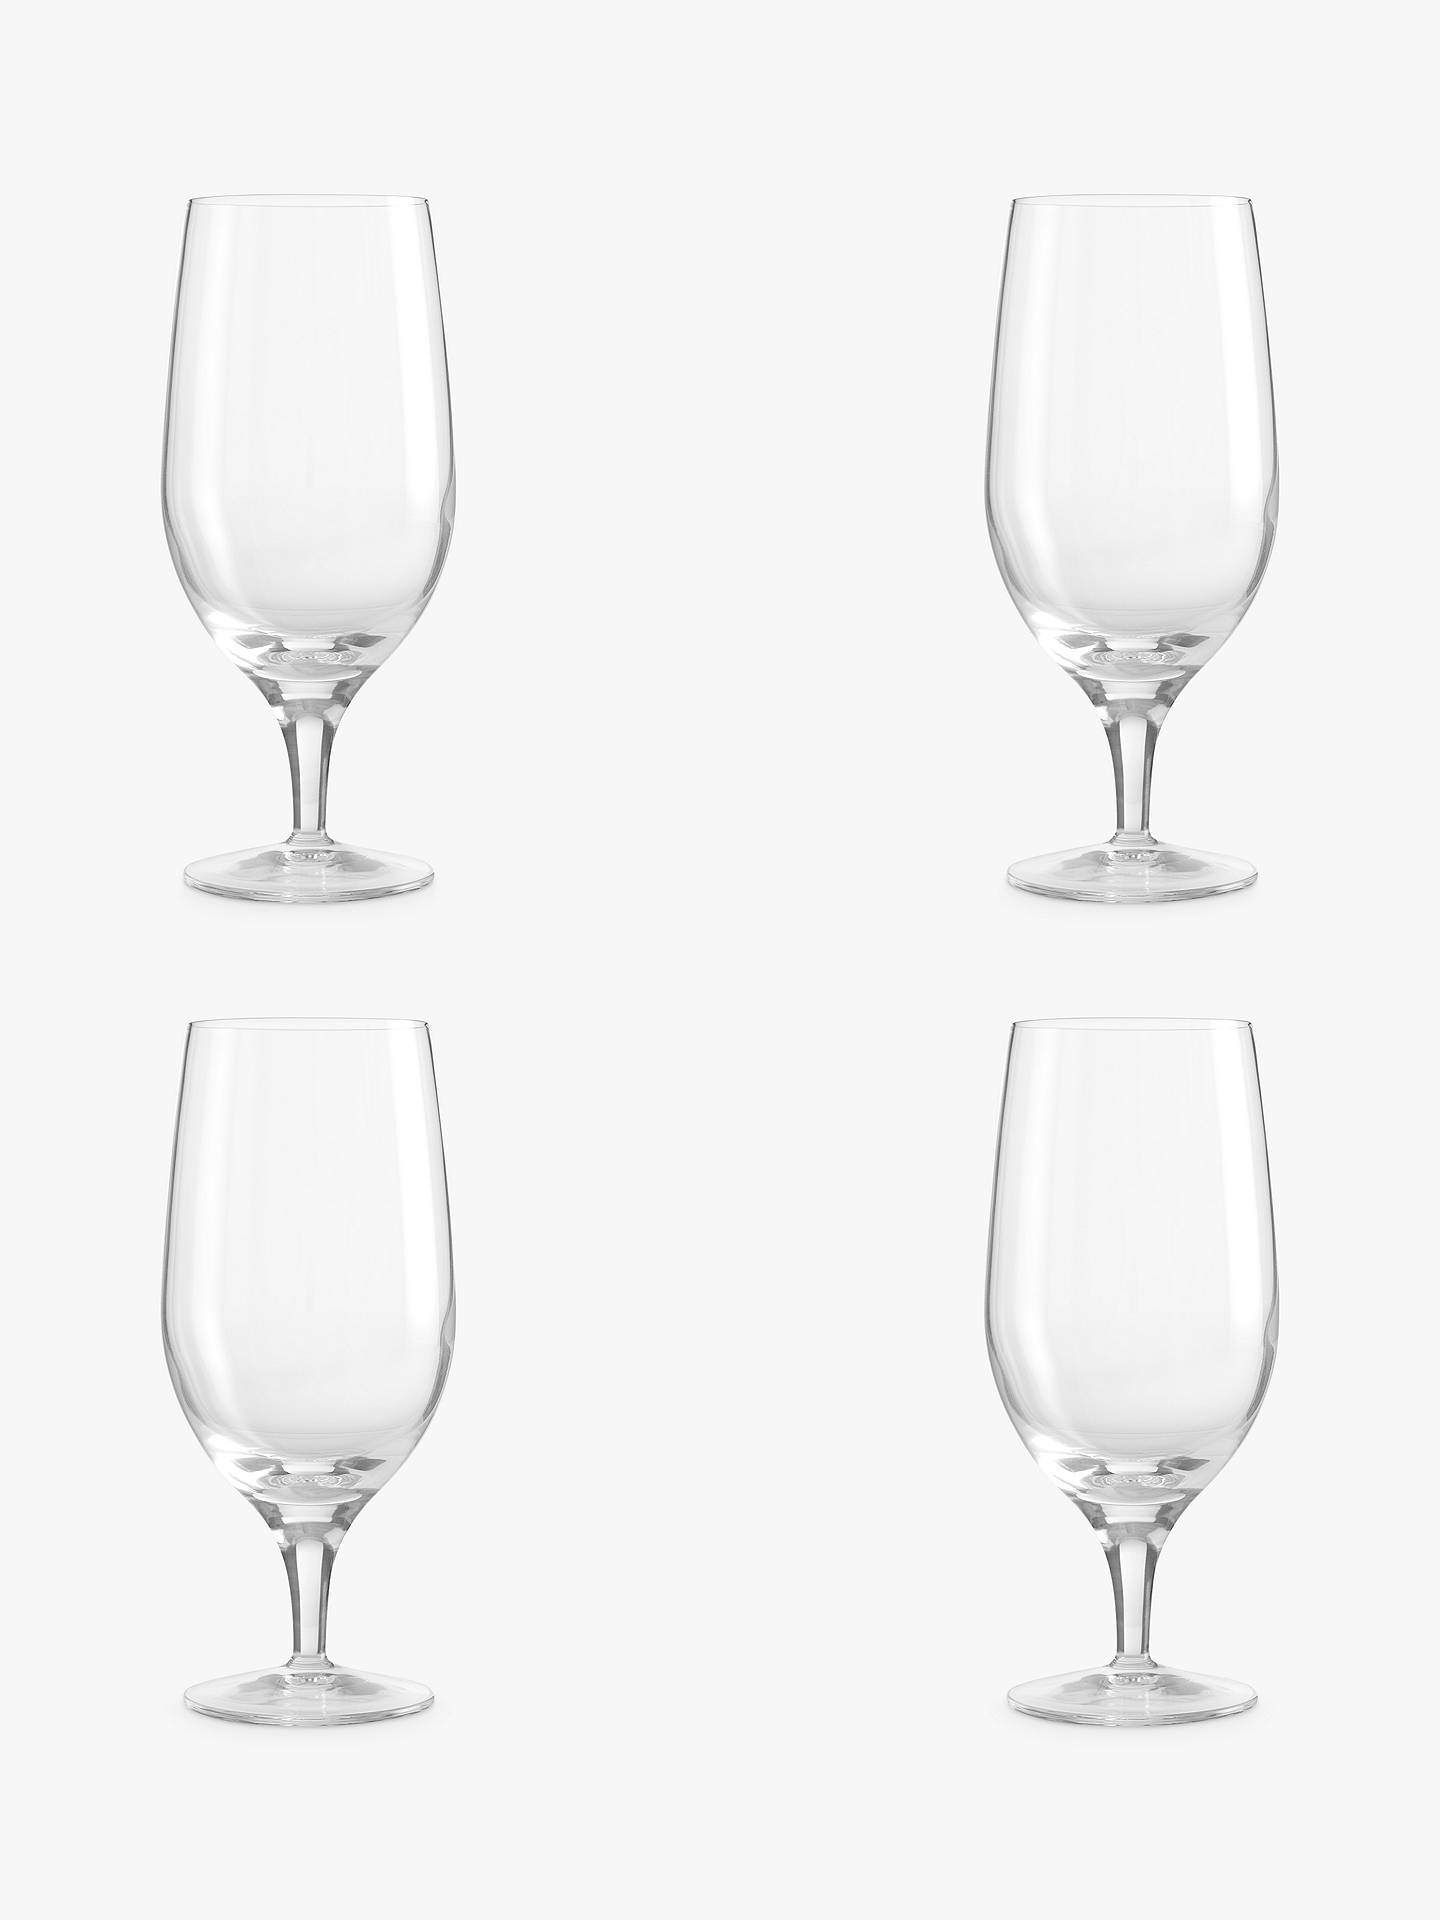 BuyJohn Lewis & Partners Michelangelo Beer Glass, Set of 4, 575ml Online at johnlewis.com